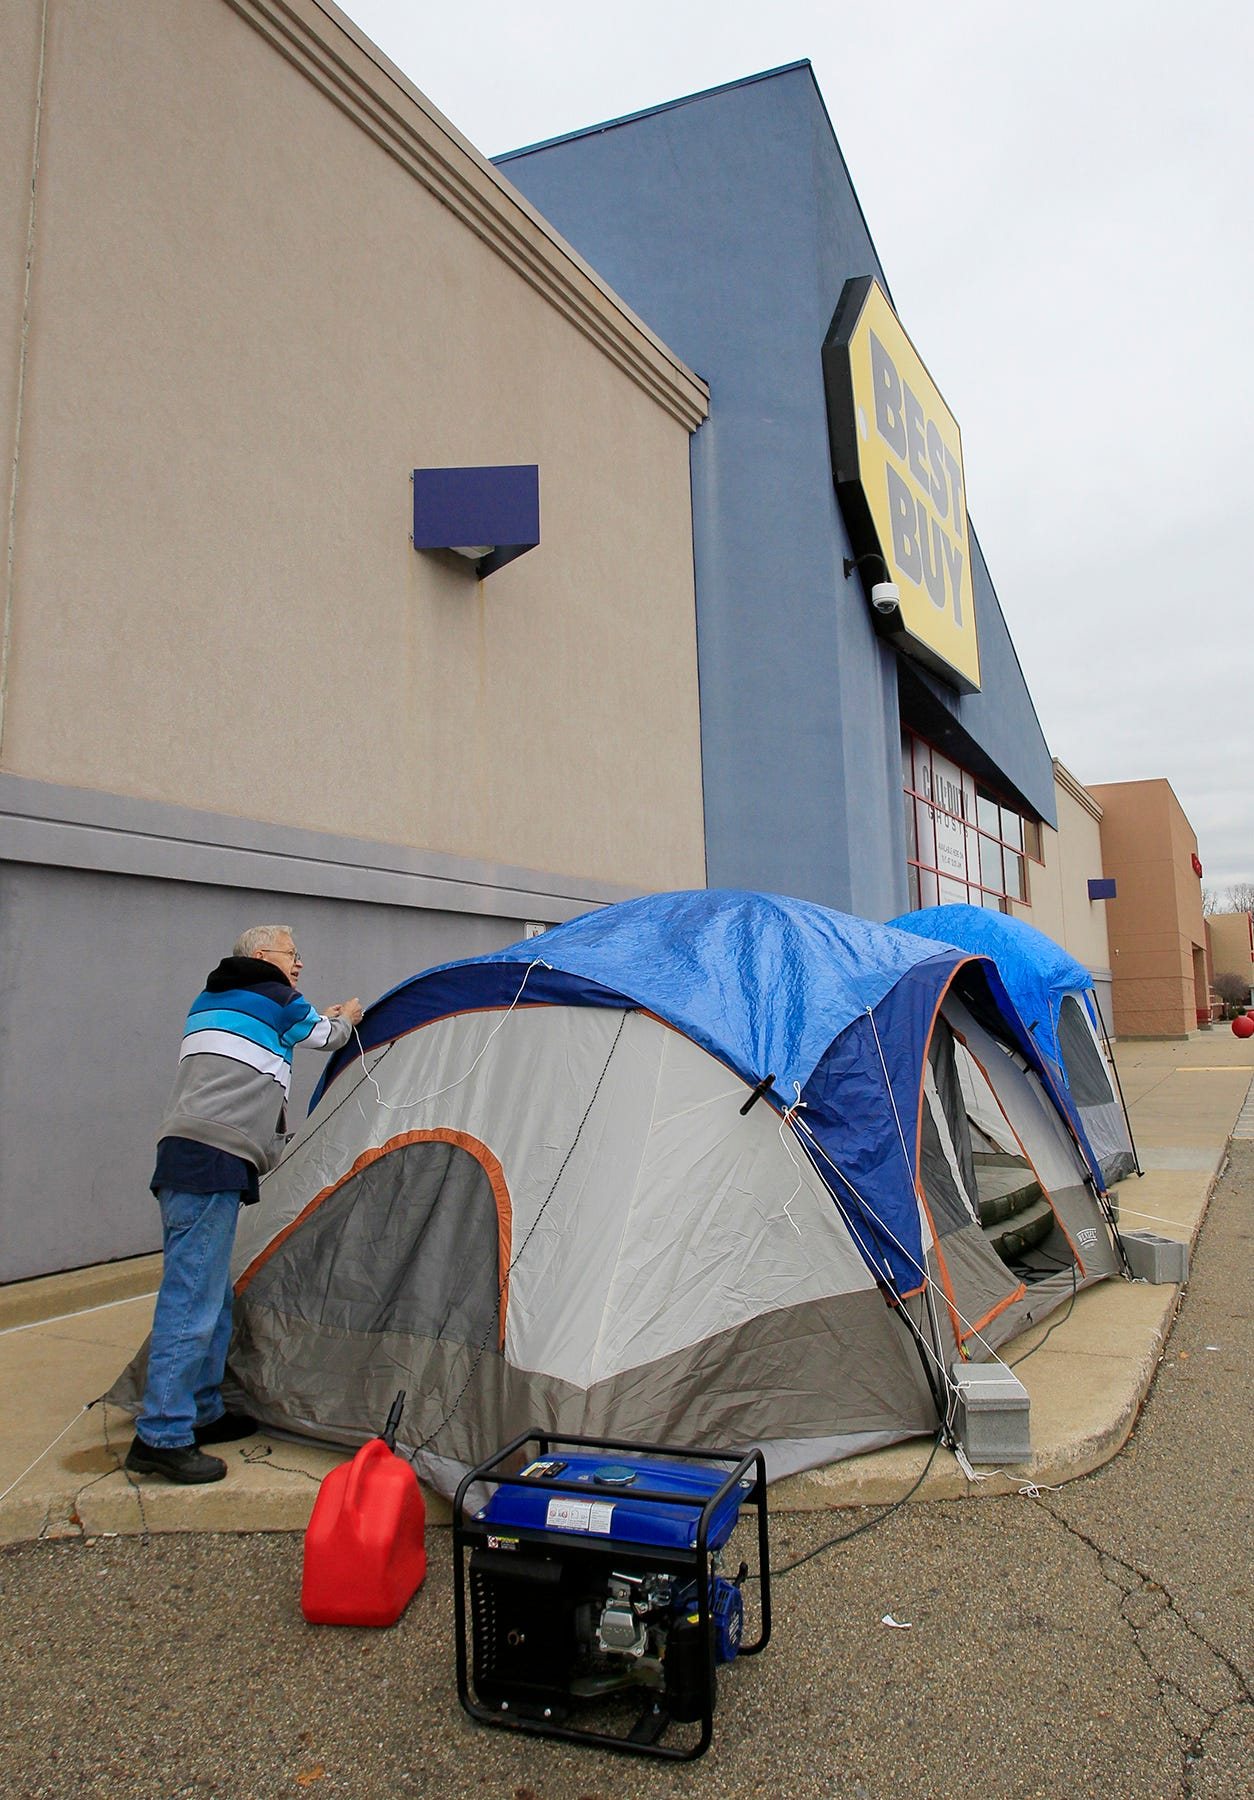 & Shoppers already lining up for Black Friday deals